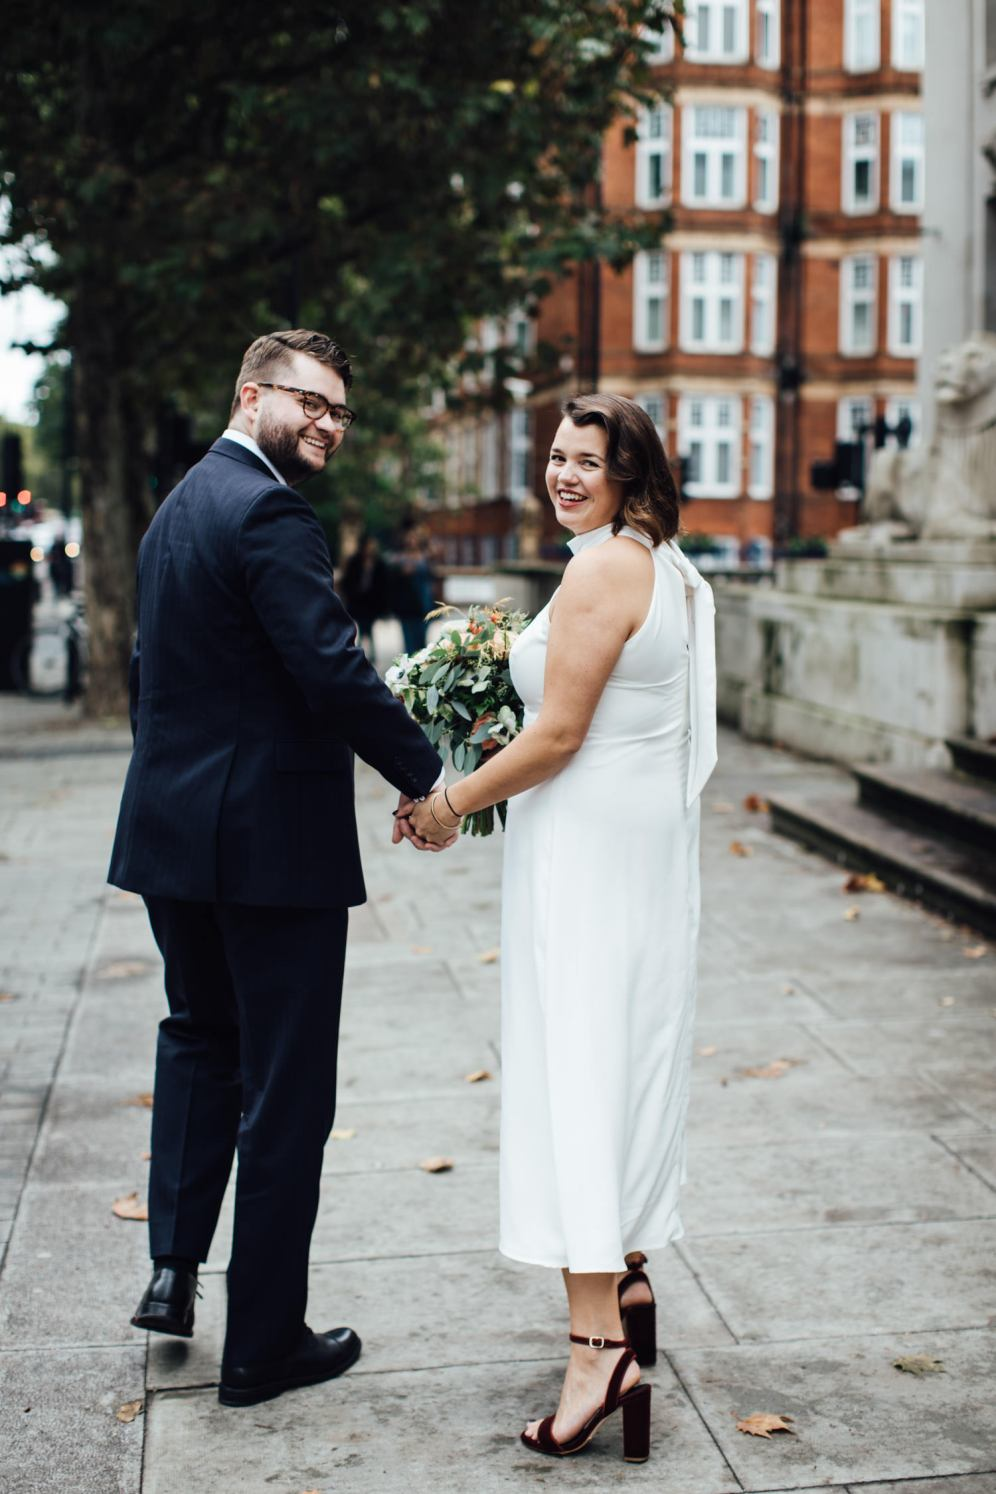 lj-marylebone-wedding-0208